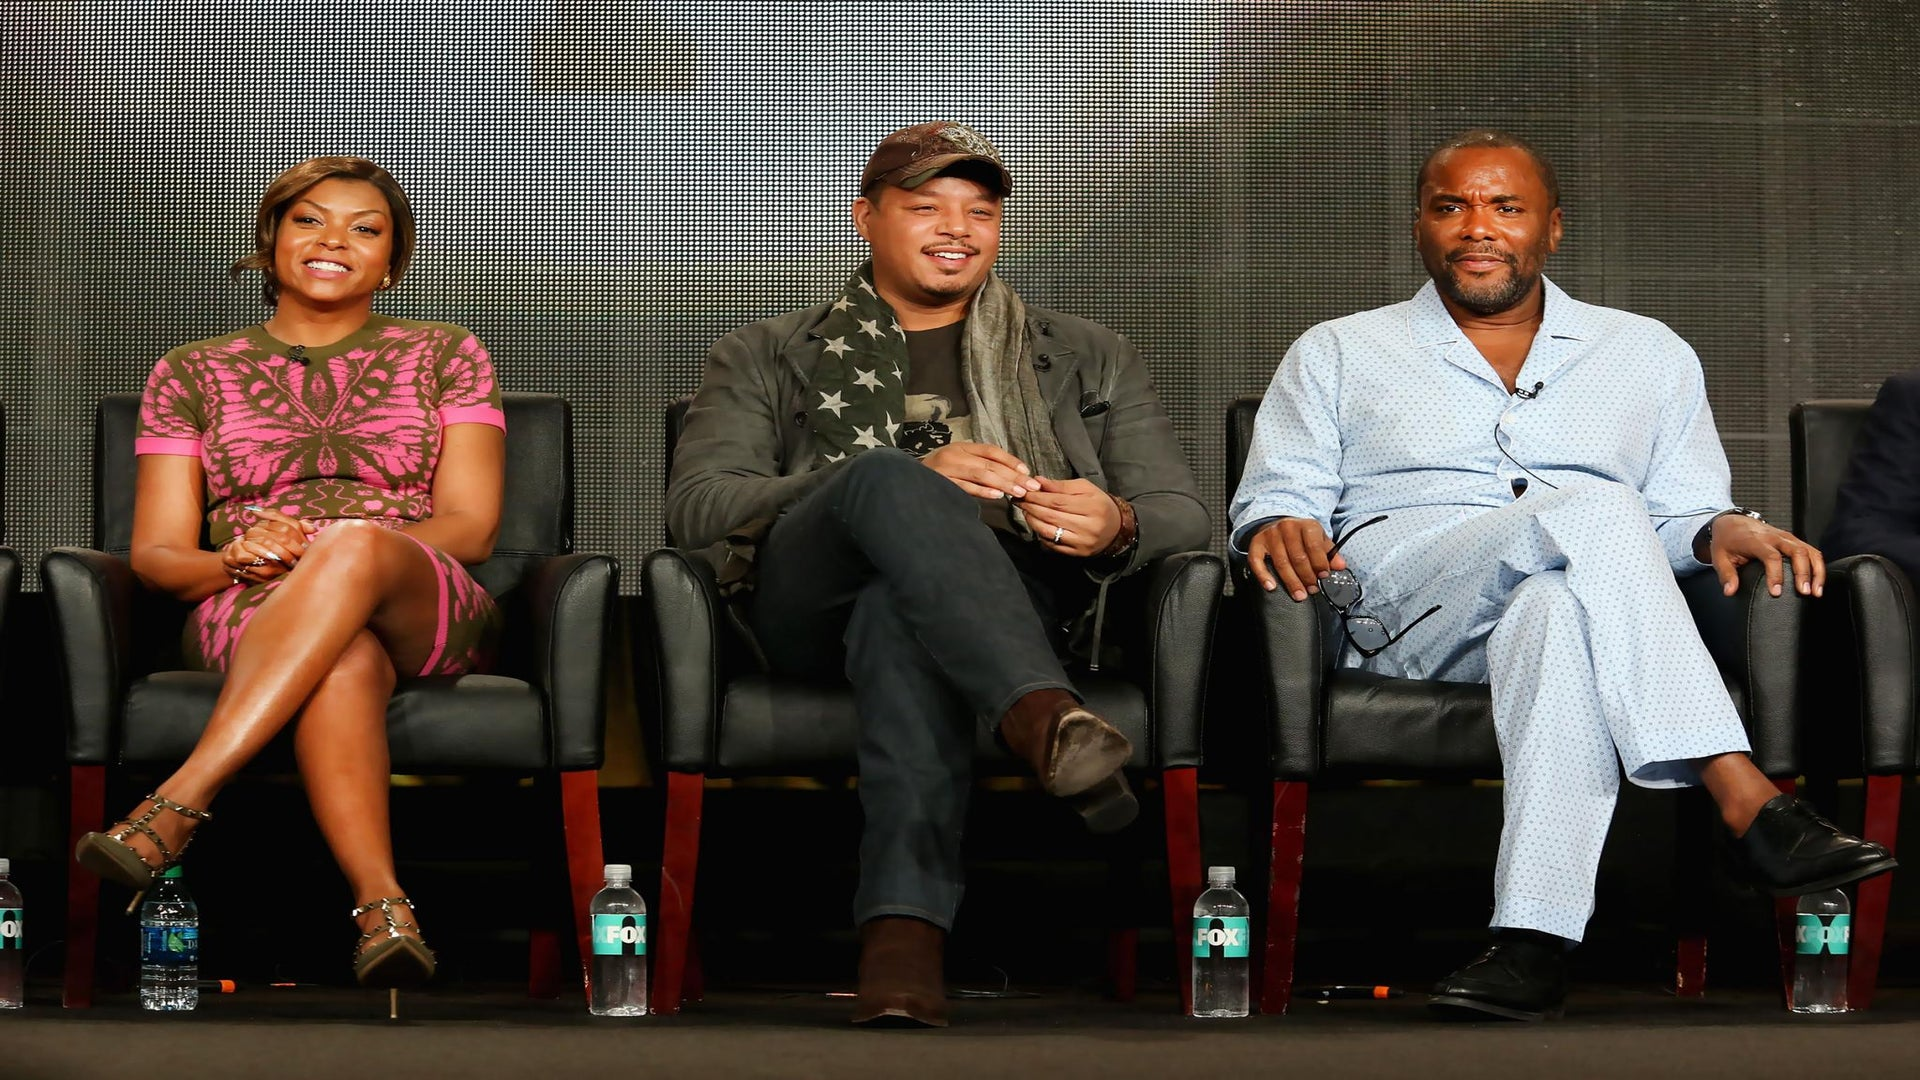 Lee Daniels Reveals the Inspiration Behind his Hit Show, 'Empire'